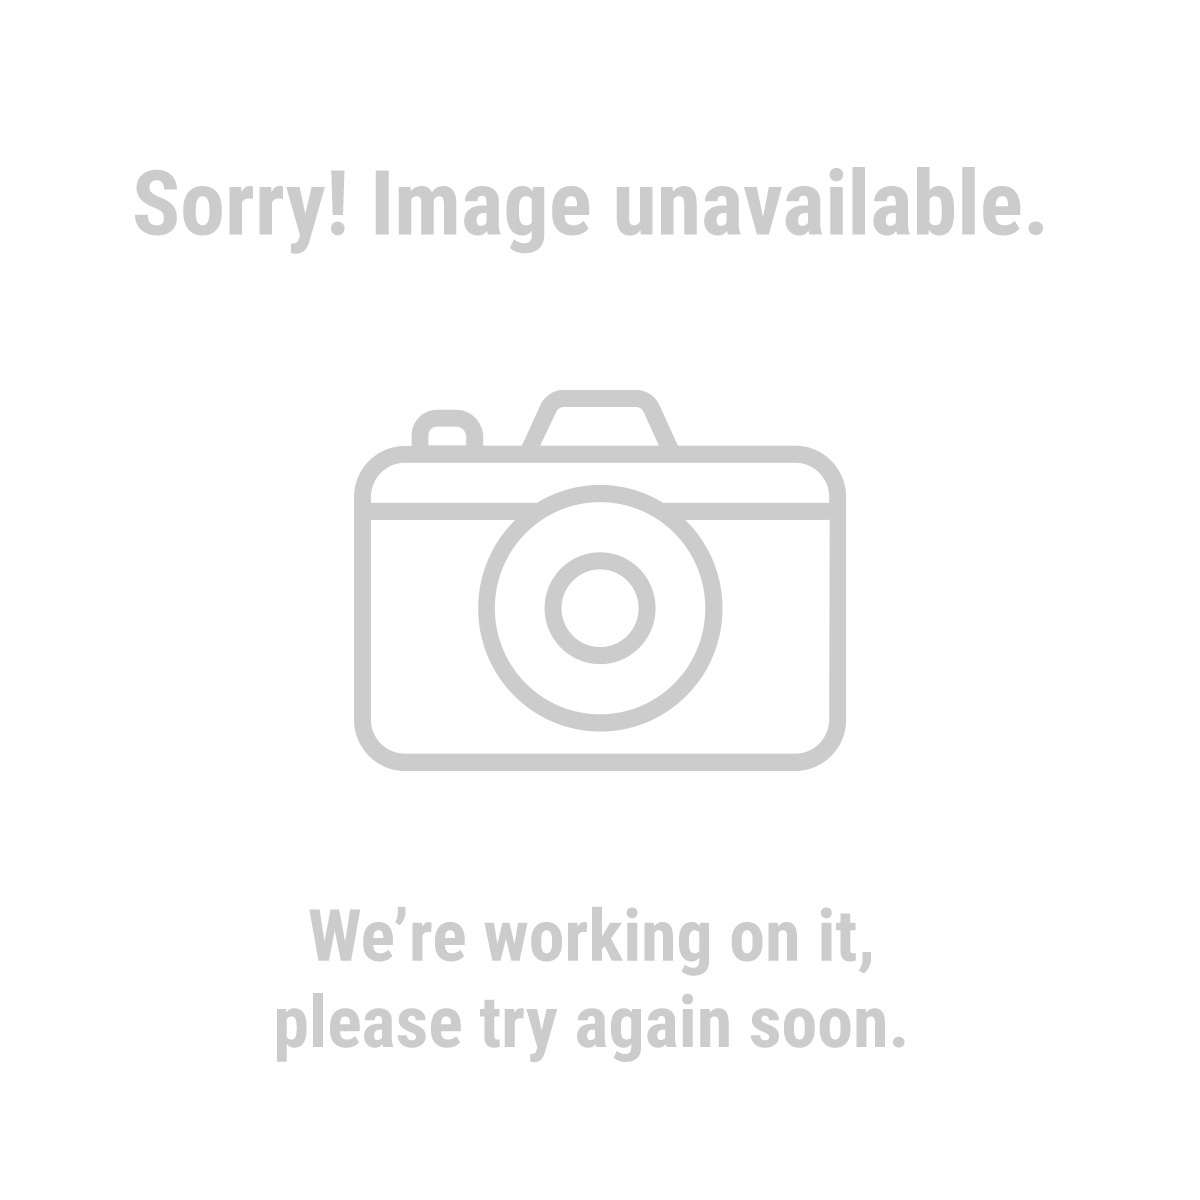 Haul-Master 63034 36 In. x 24 In. Polypropylene Industrial Service Cart